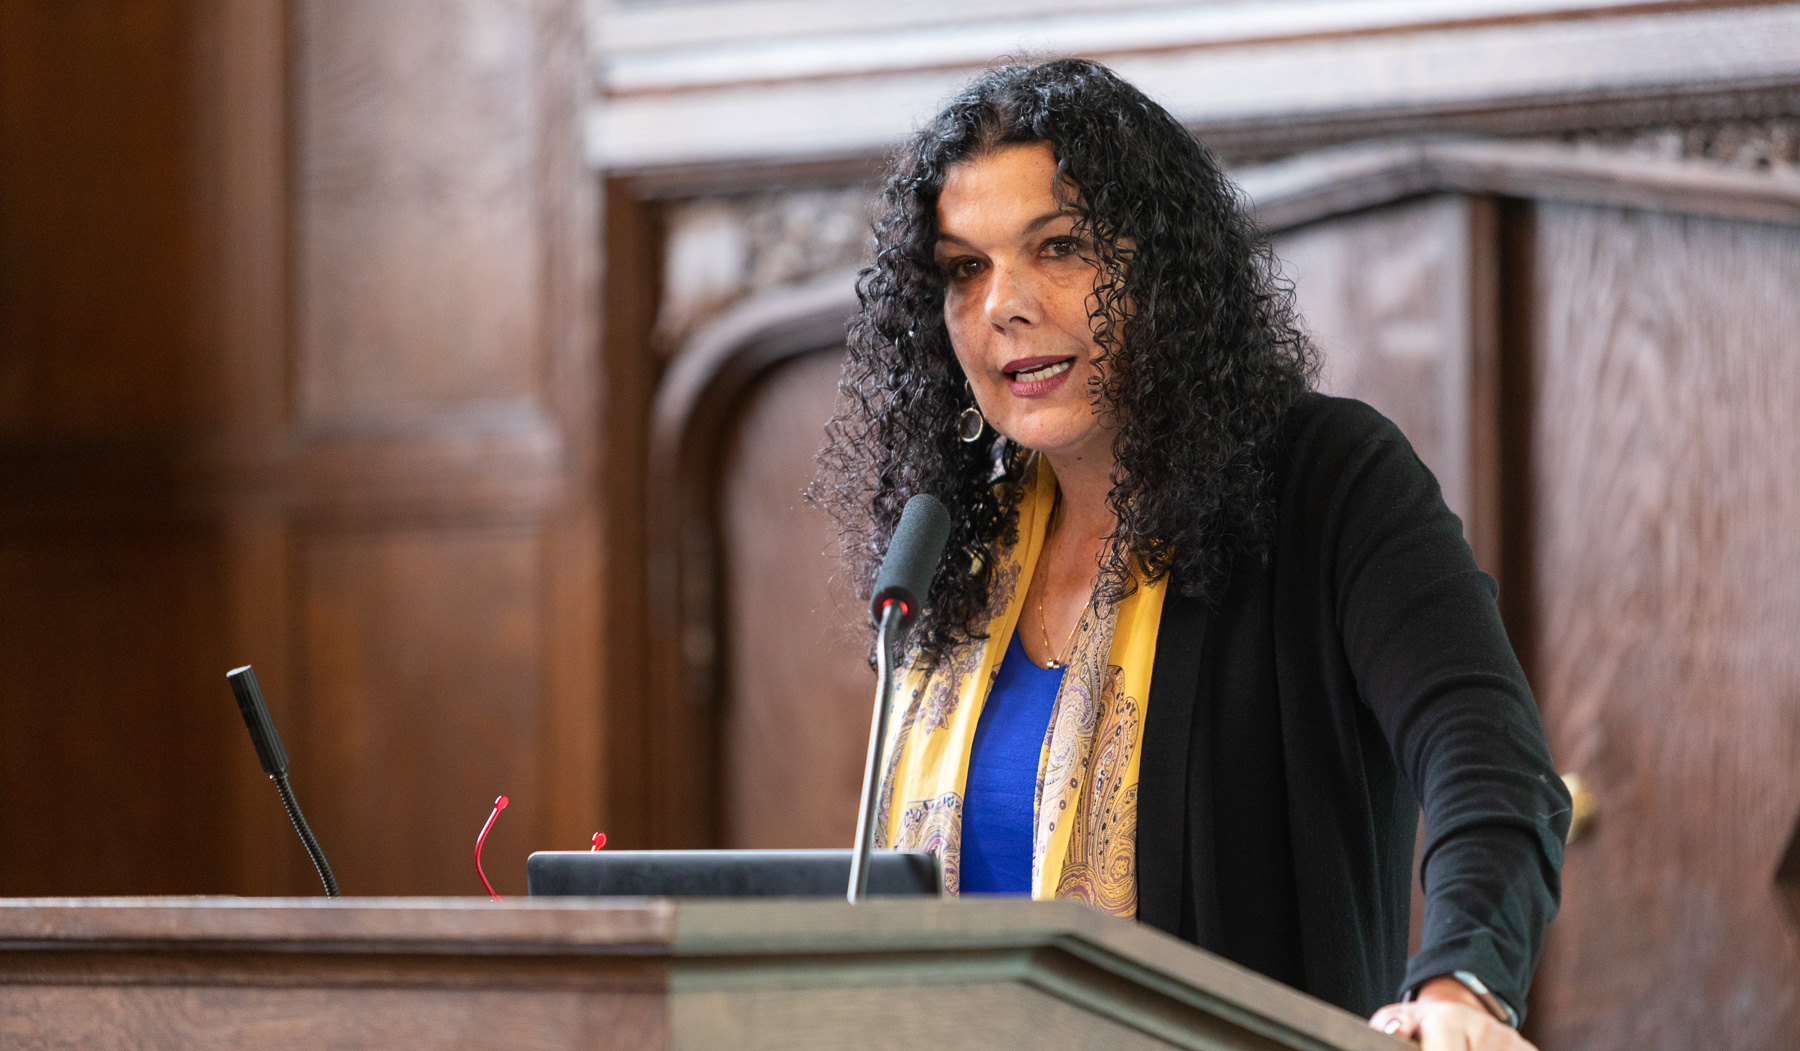 Salma Ghanem, acting provost, offered welcoming remarks. (DePaul University/Jeff Carrion)​